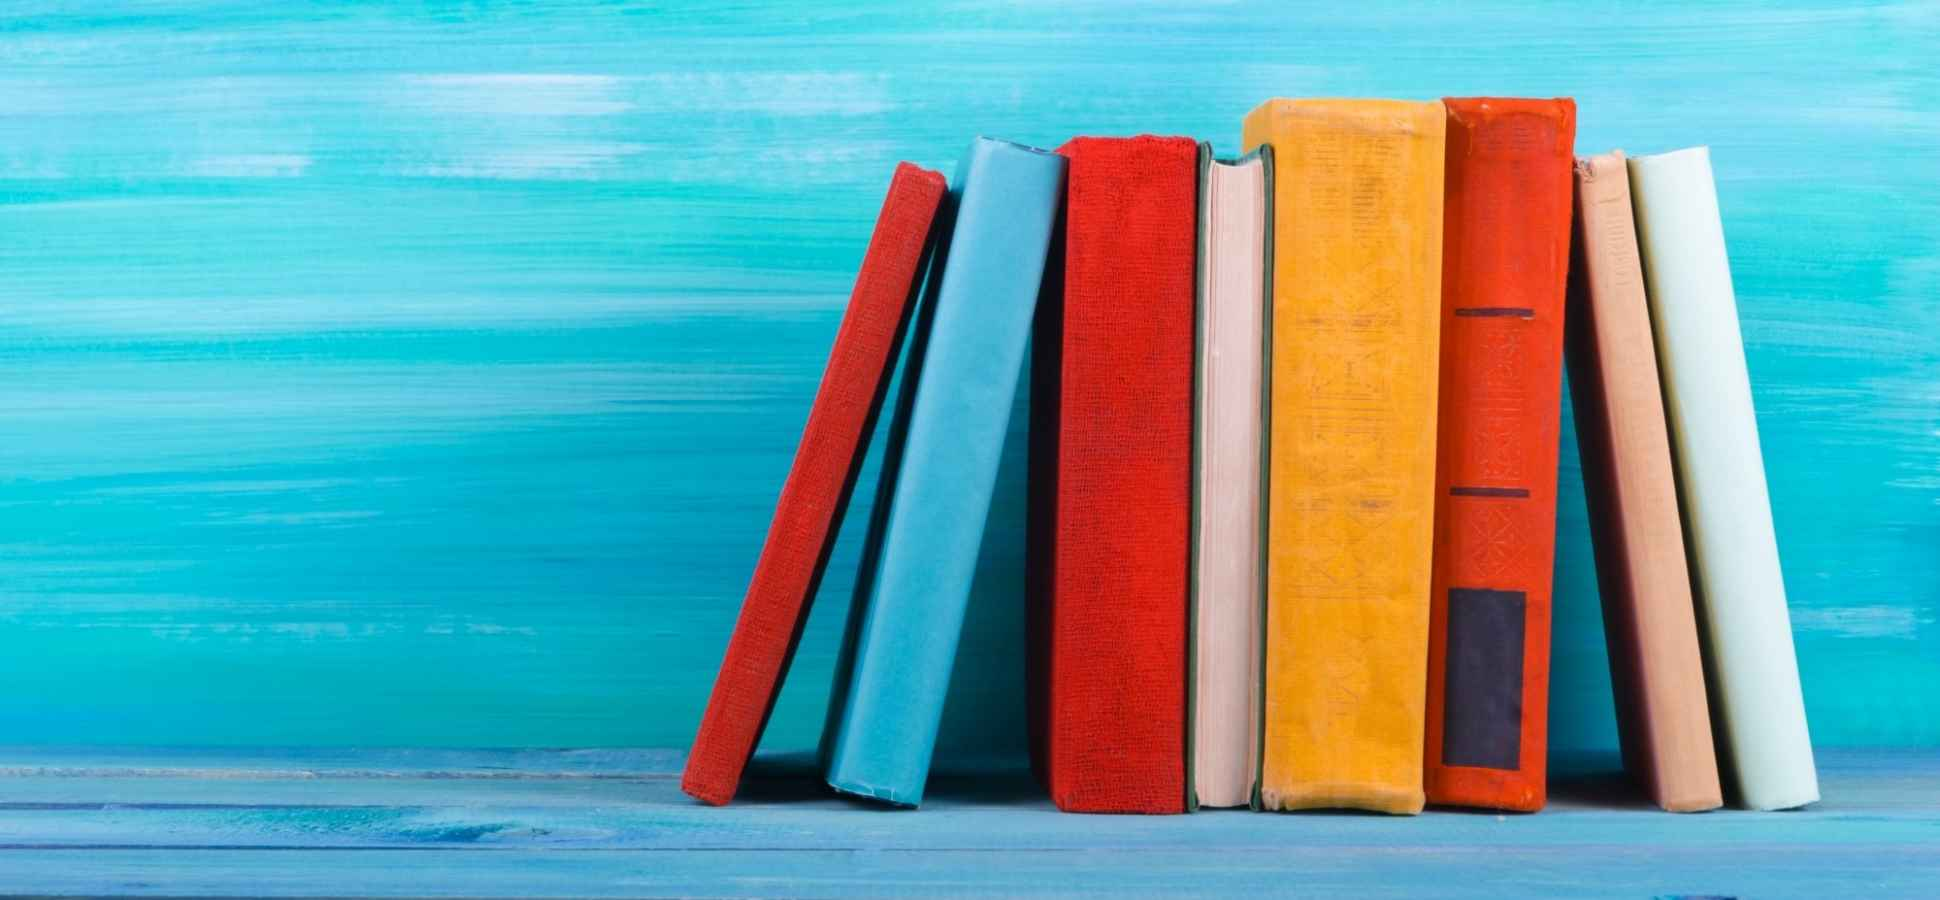 How to Write Your Book in a Matter of Months